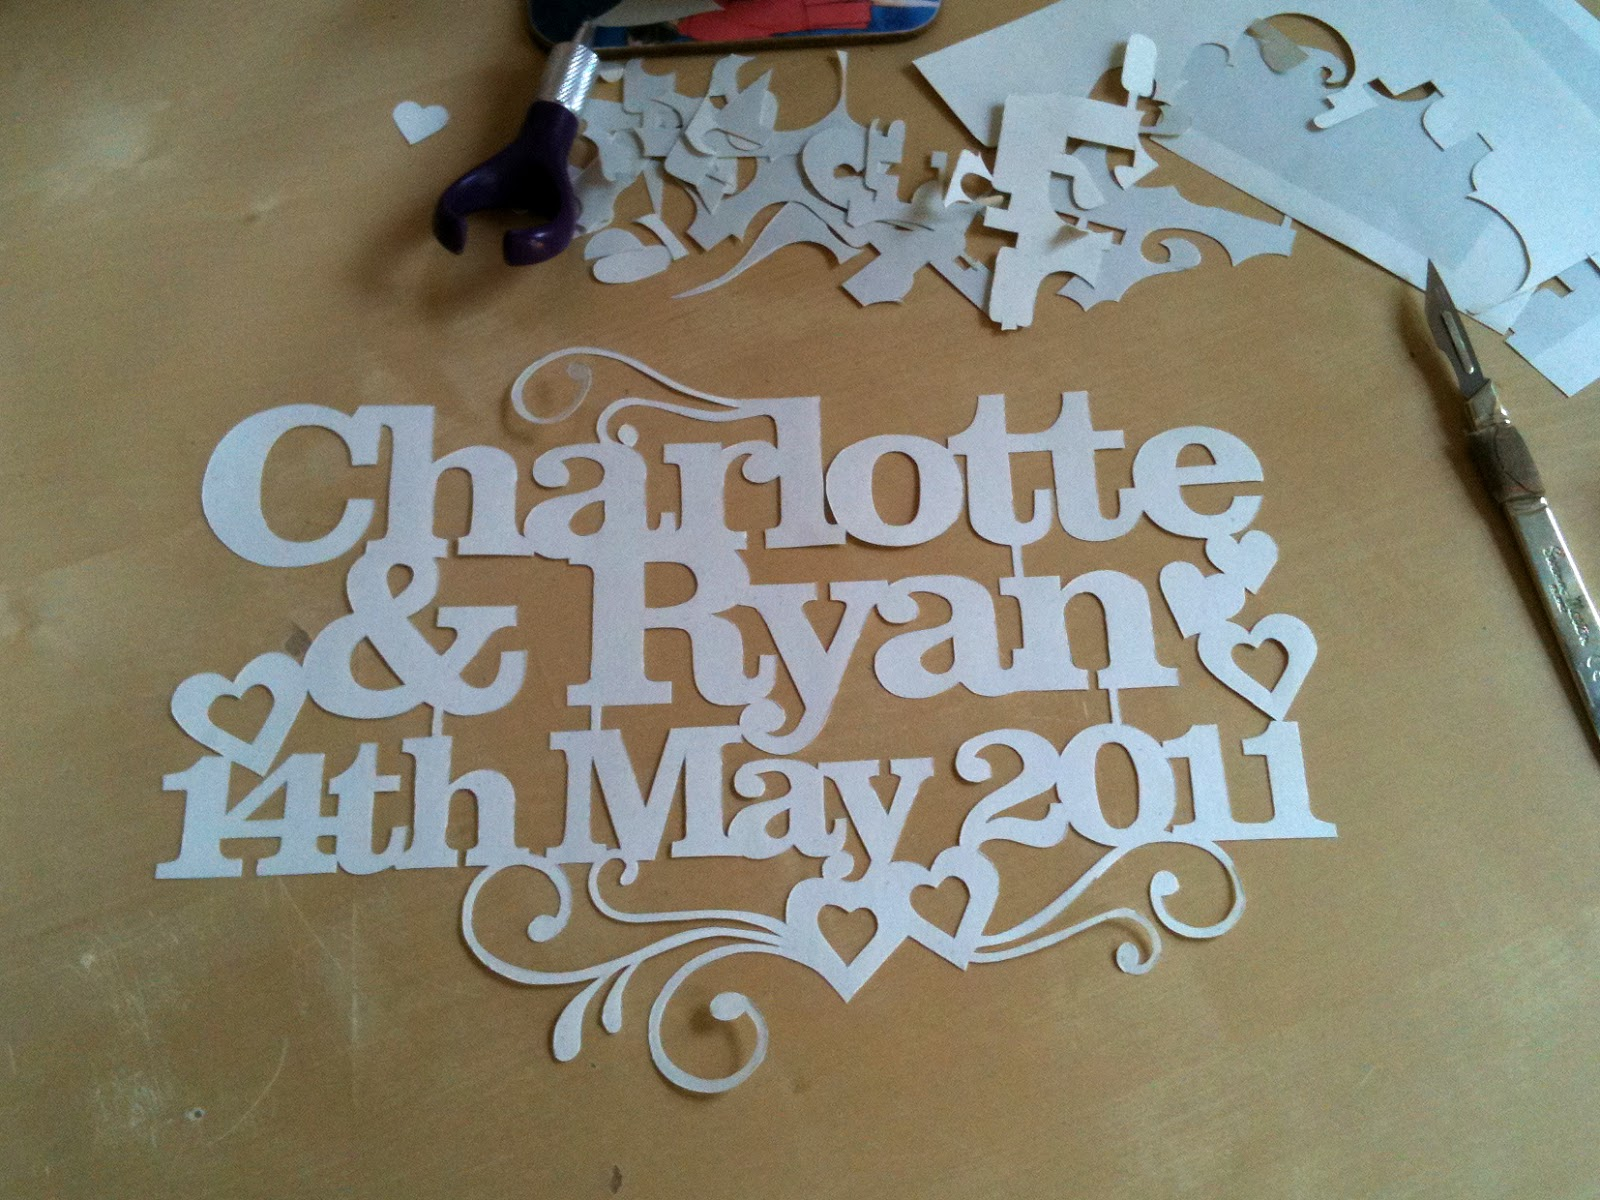 Perfect Wedding Gift For Bride: Kyleighs Papercuts: The Perfect Wedding Gift